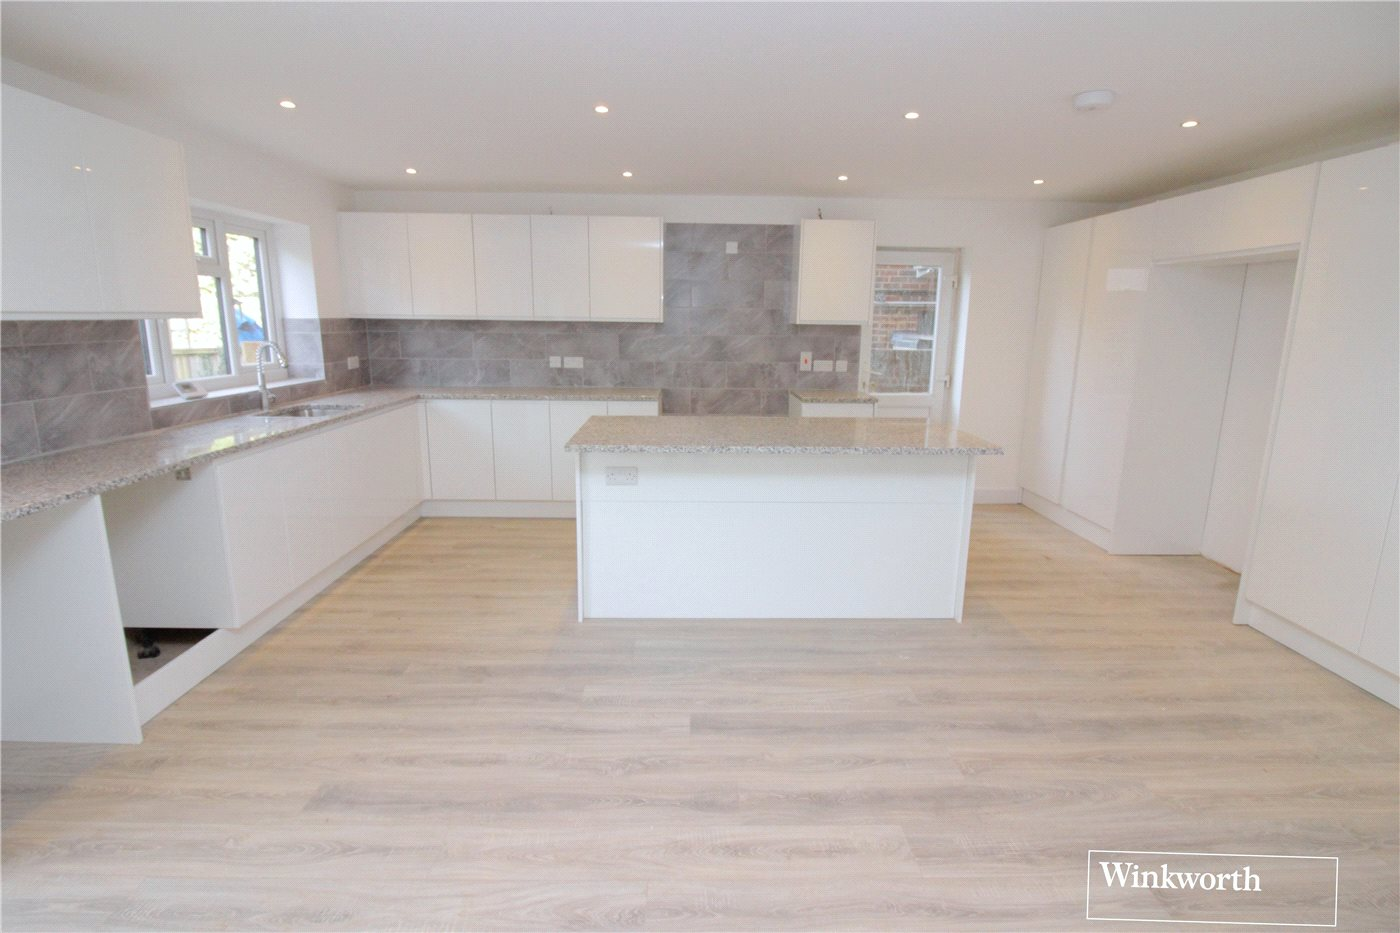 5 Bedrooms Semi Detached House for sale in Beech Drive, Borehamwood, Hertfordshire, WD6